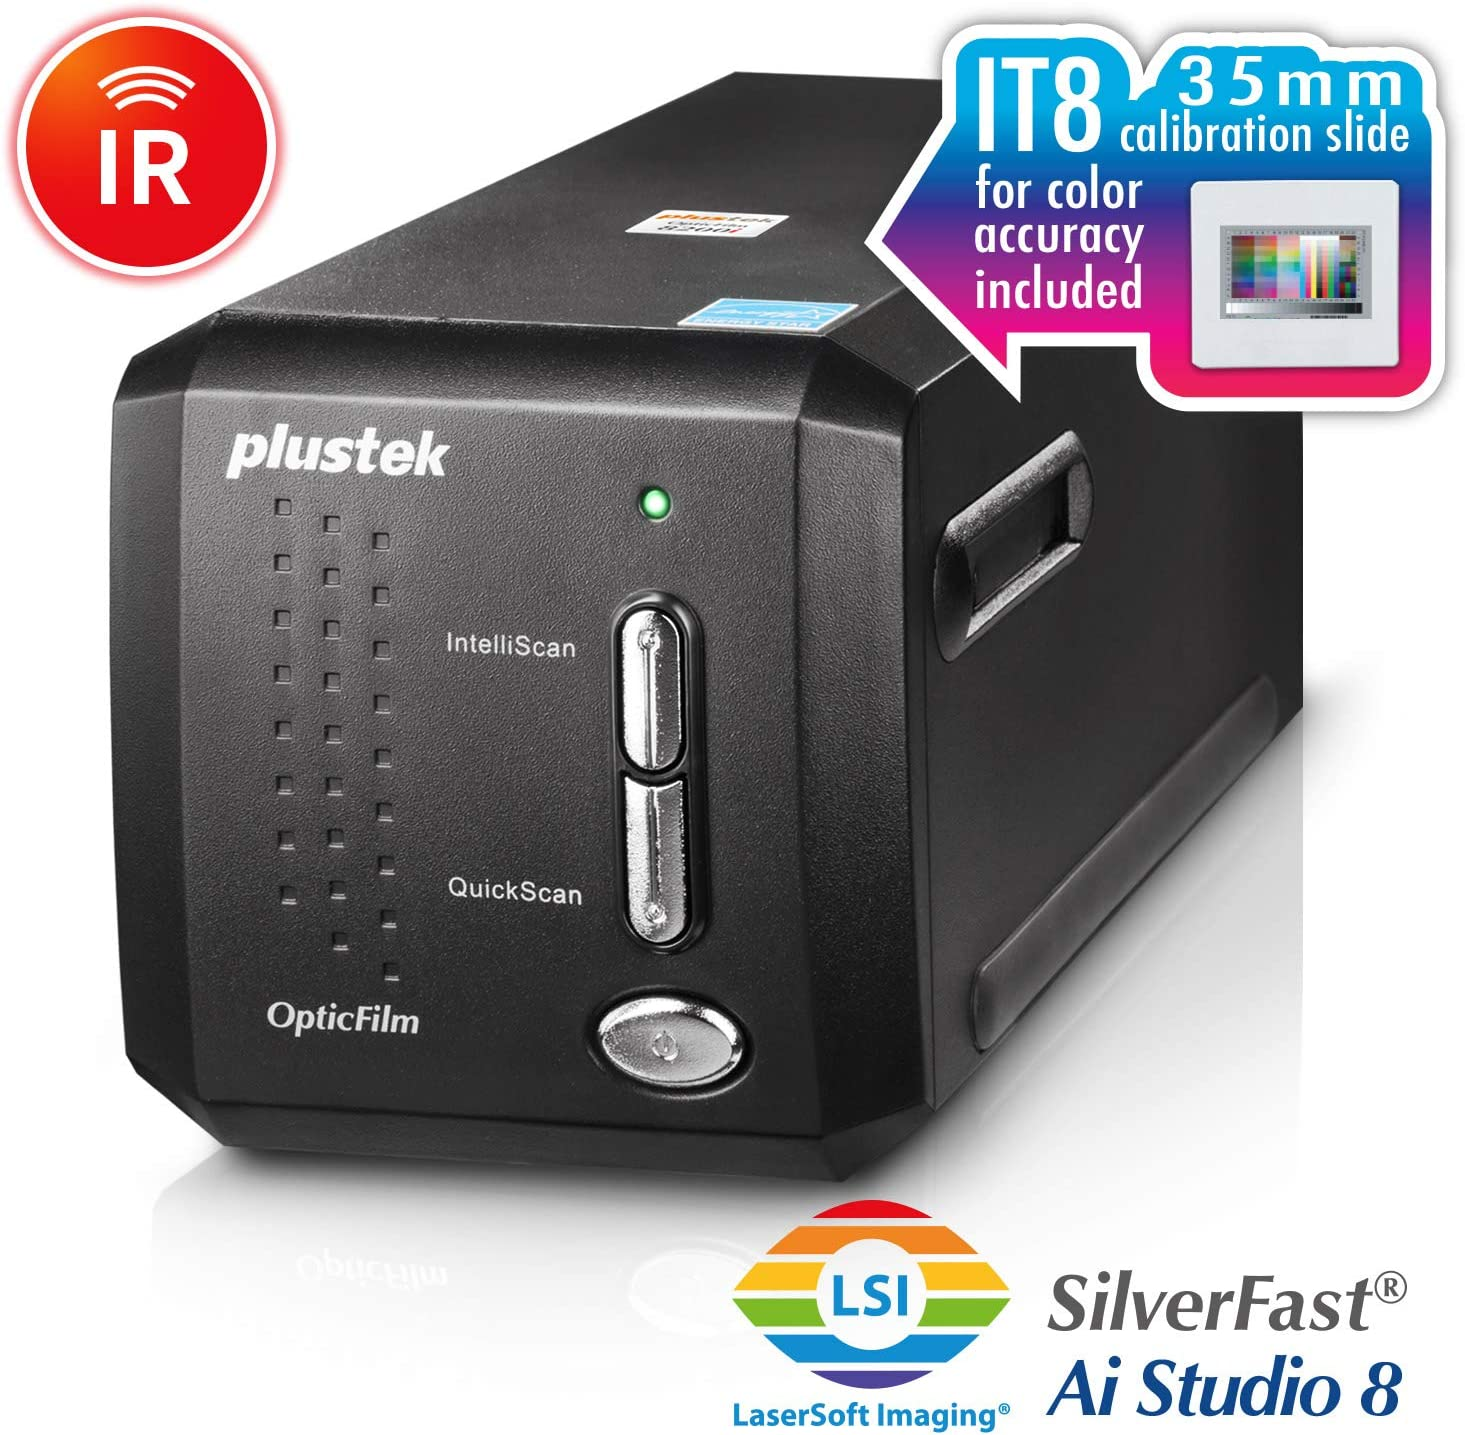 Plustek OpticFilm 8200i AI - 35mm Film & Slides Scanner. IT 8 Calibration Target + SilverFast Ai Studio 8.8, 7200 dpi Resolution 64Bit HDRi , Mac/PC: Electronics